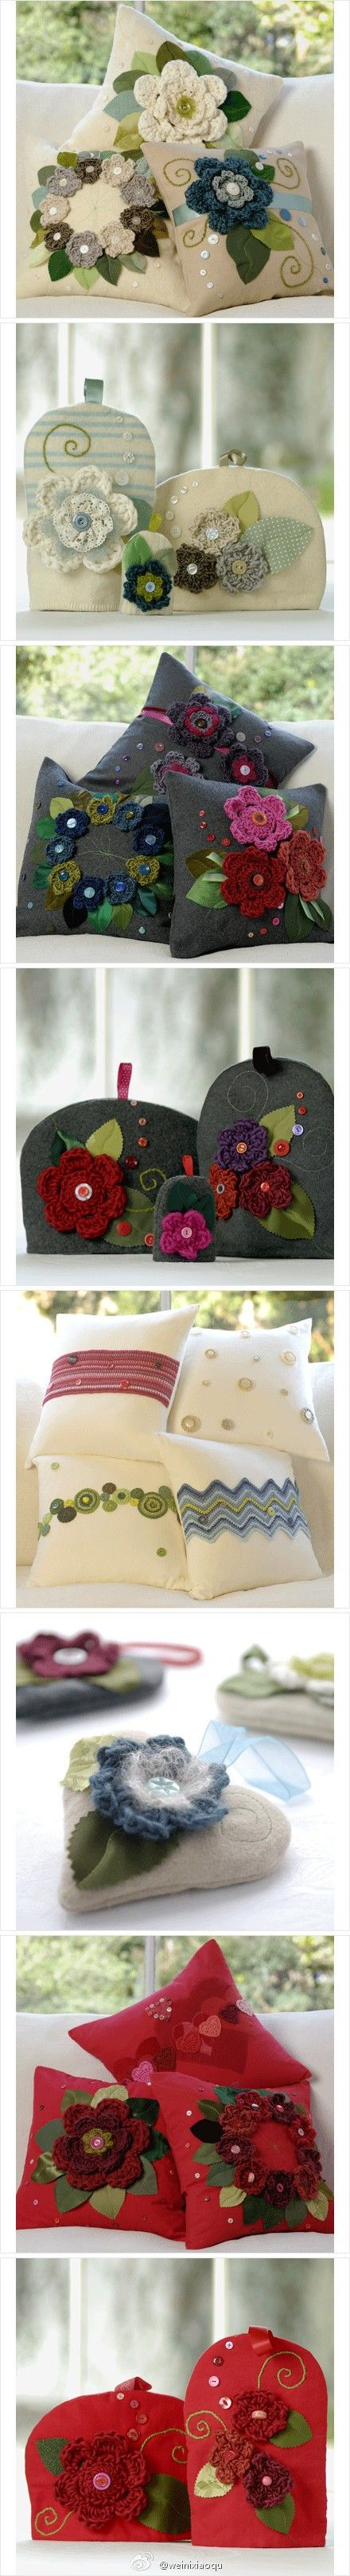 I don't crochet, but surely these flowers could be made out of felt.  These pillows and tea cozies are beautiful!